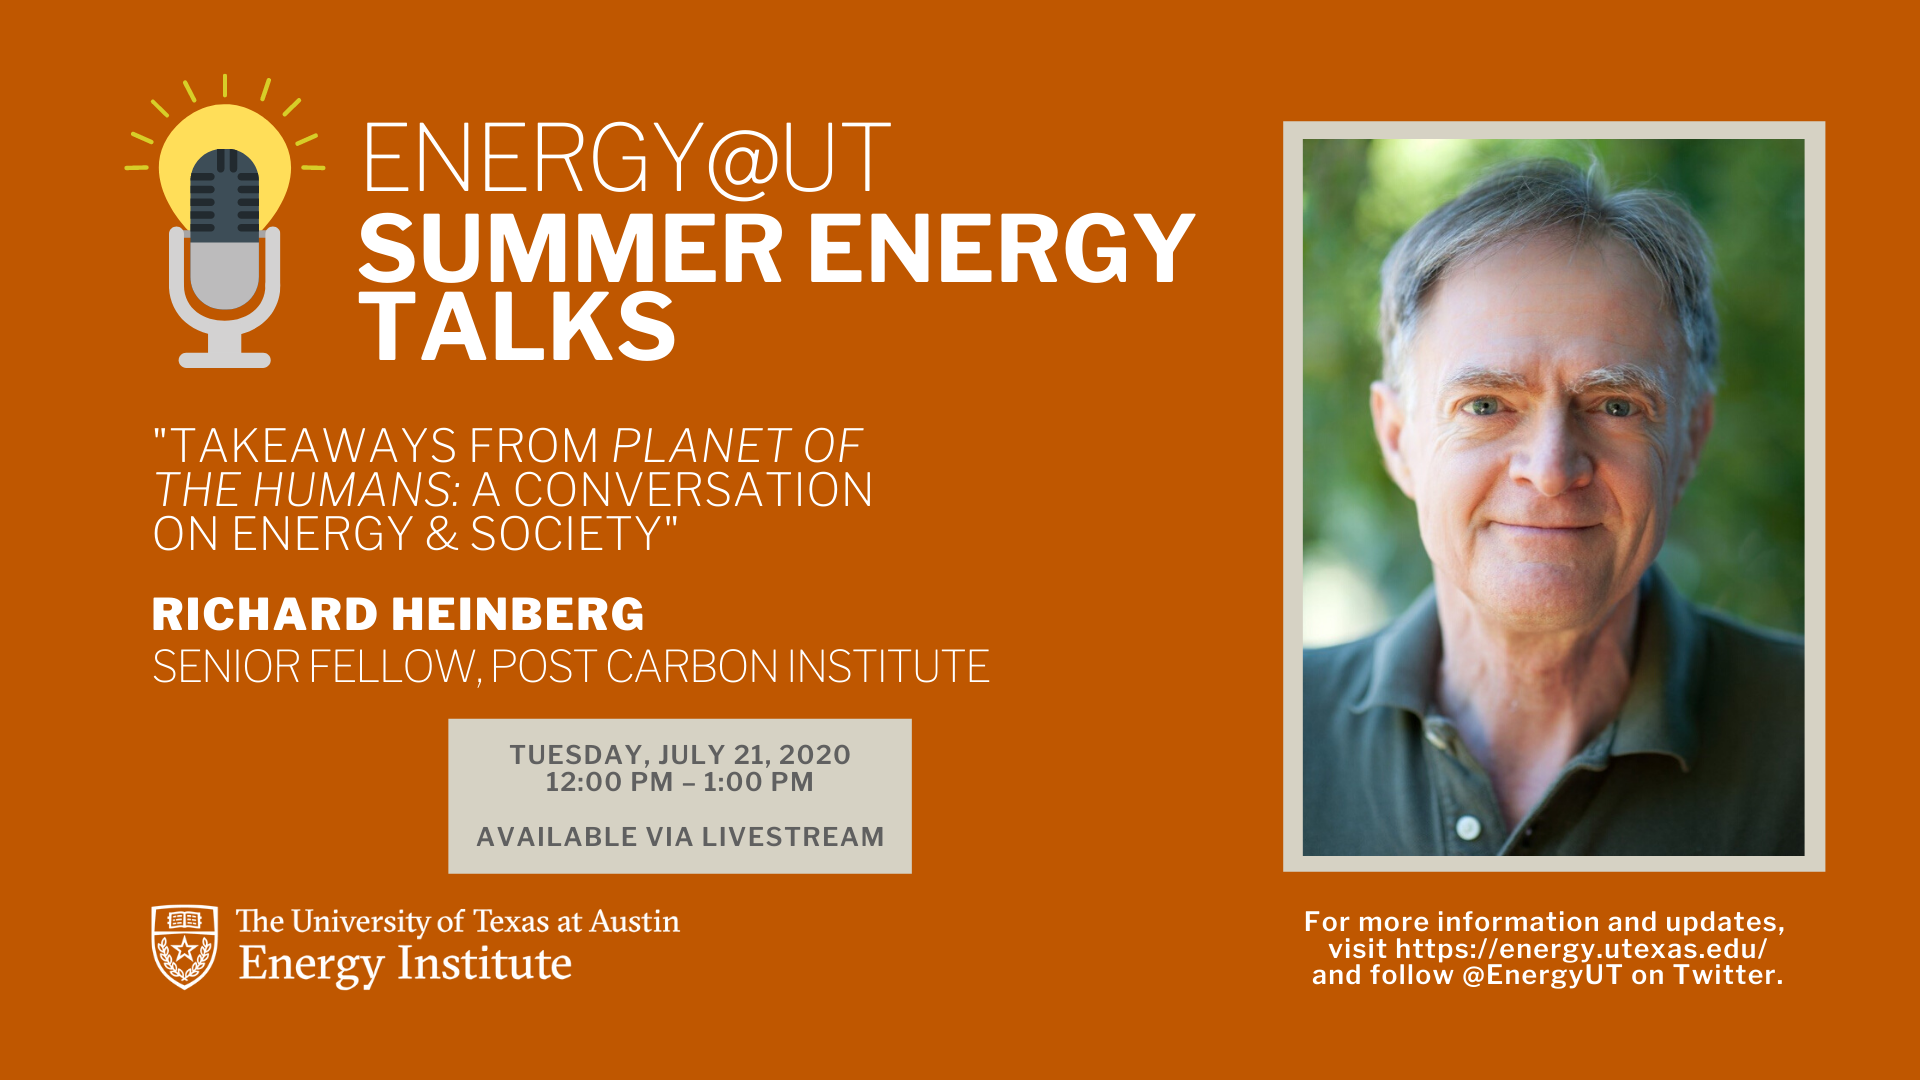 Energy@UT Summer Energy Talks Takeaways from Planet of the Humans: A Conversation on Energy & Society, Richard Heinberg Senior Fellow at Post Carbon Institute